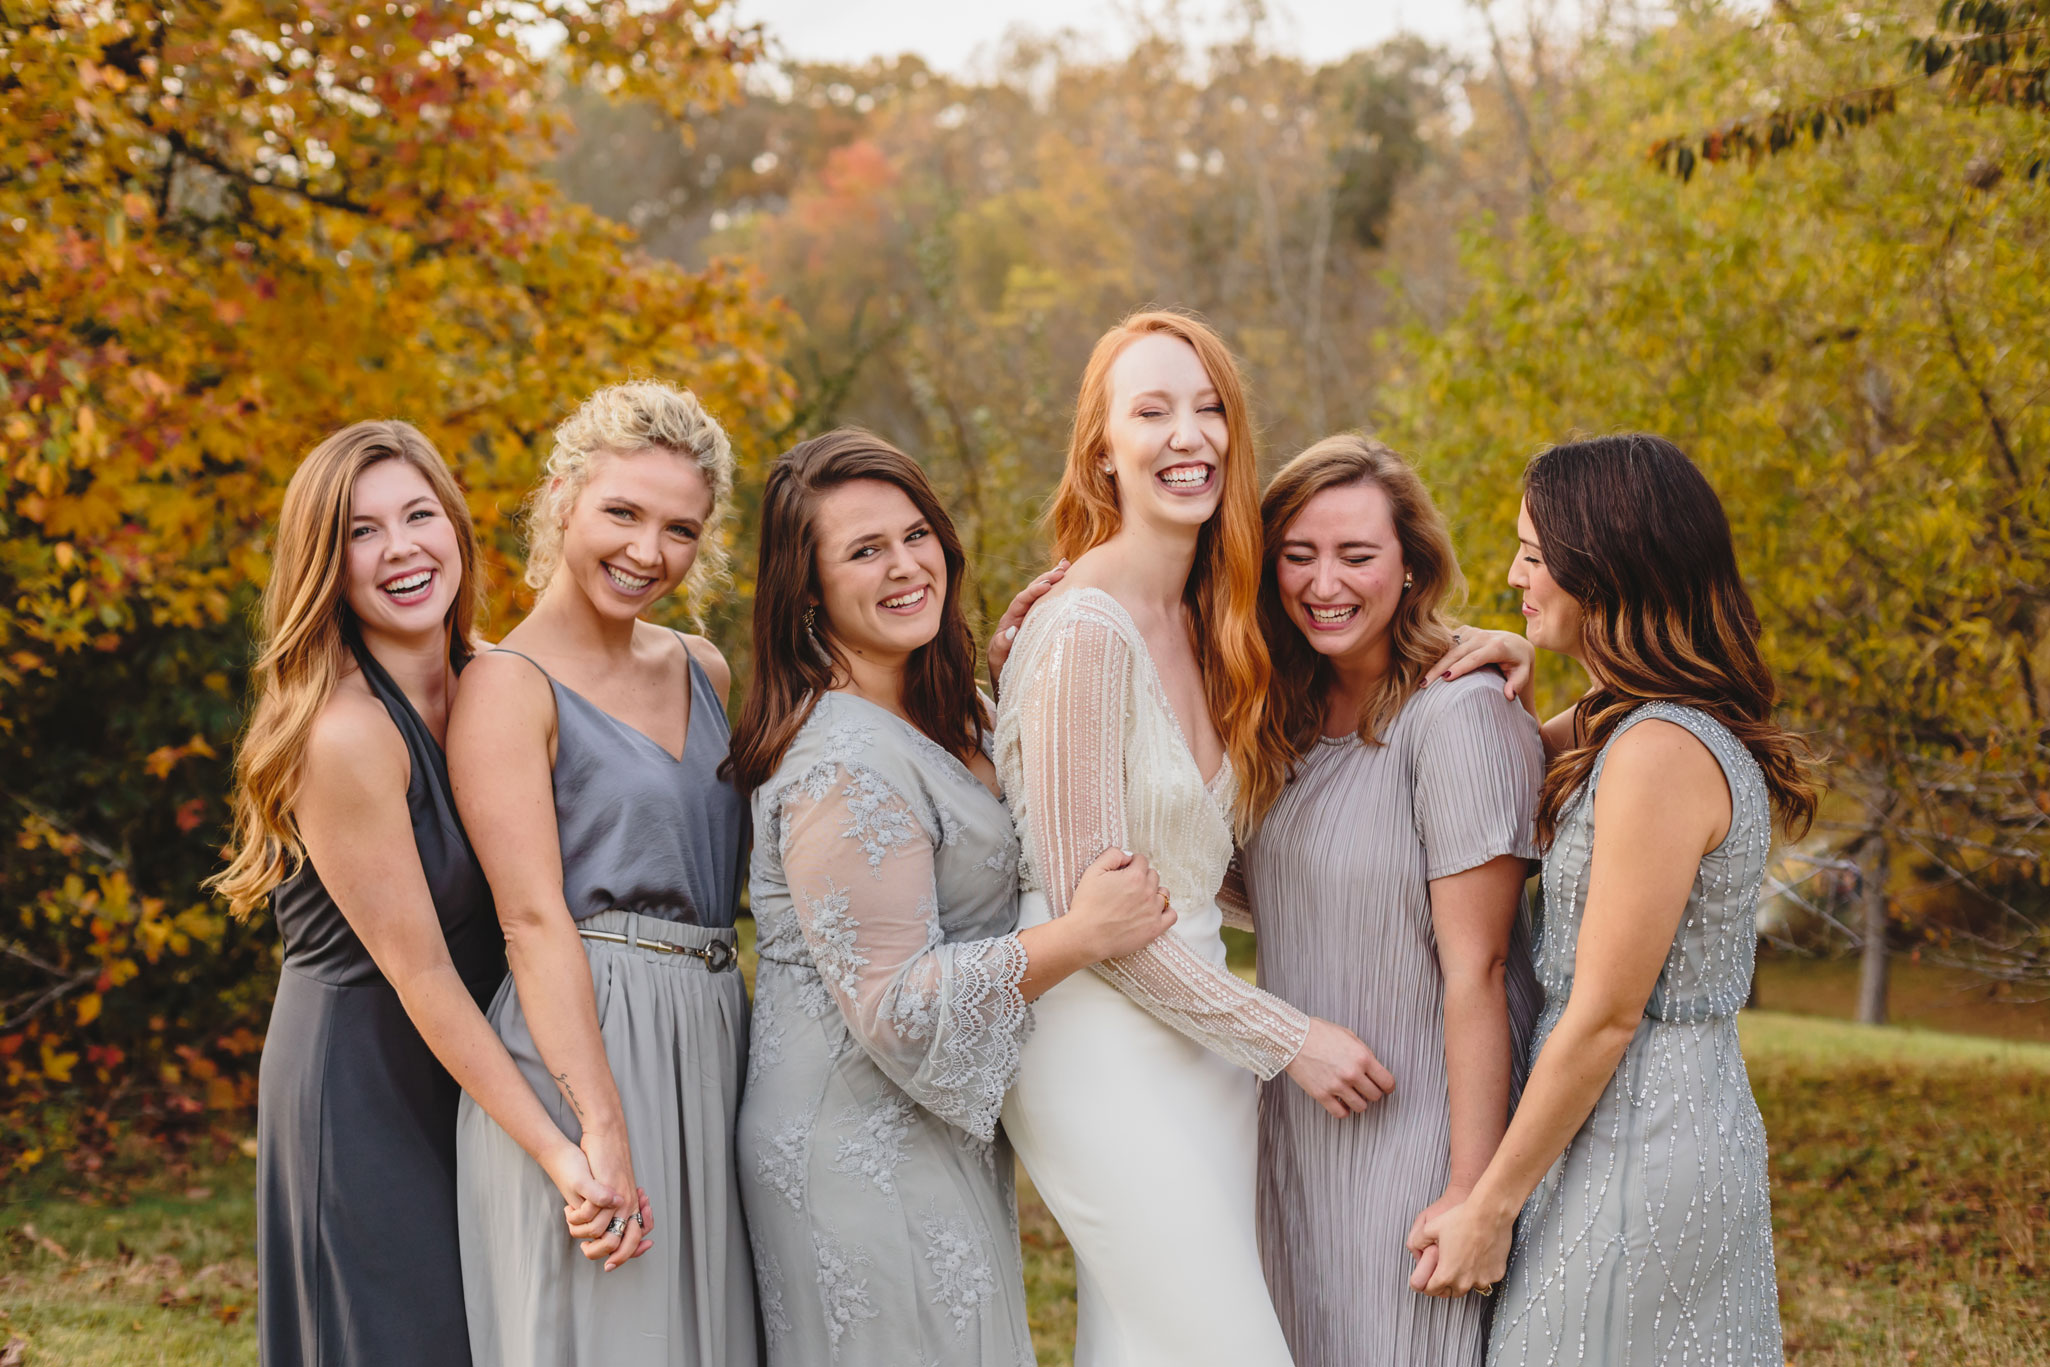 Bridesmaids | Autumn Tennessee Wedding in Knoxville